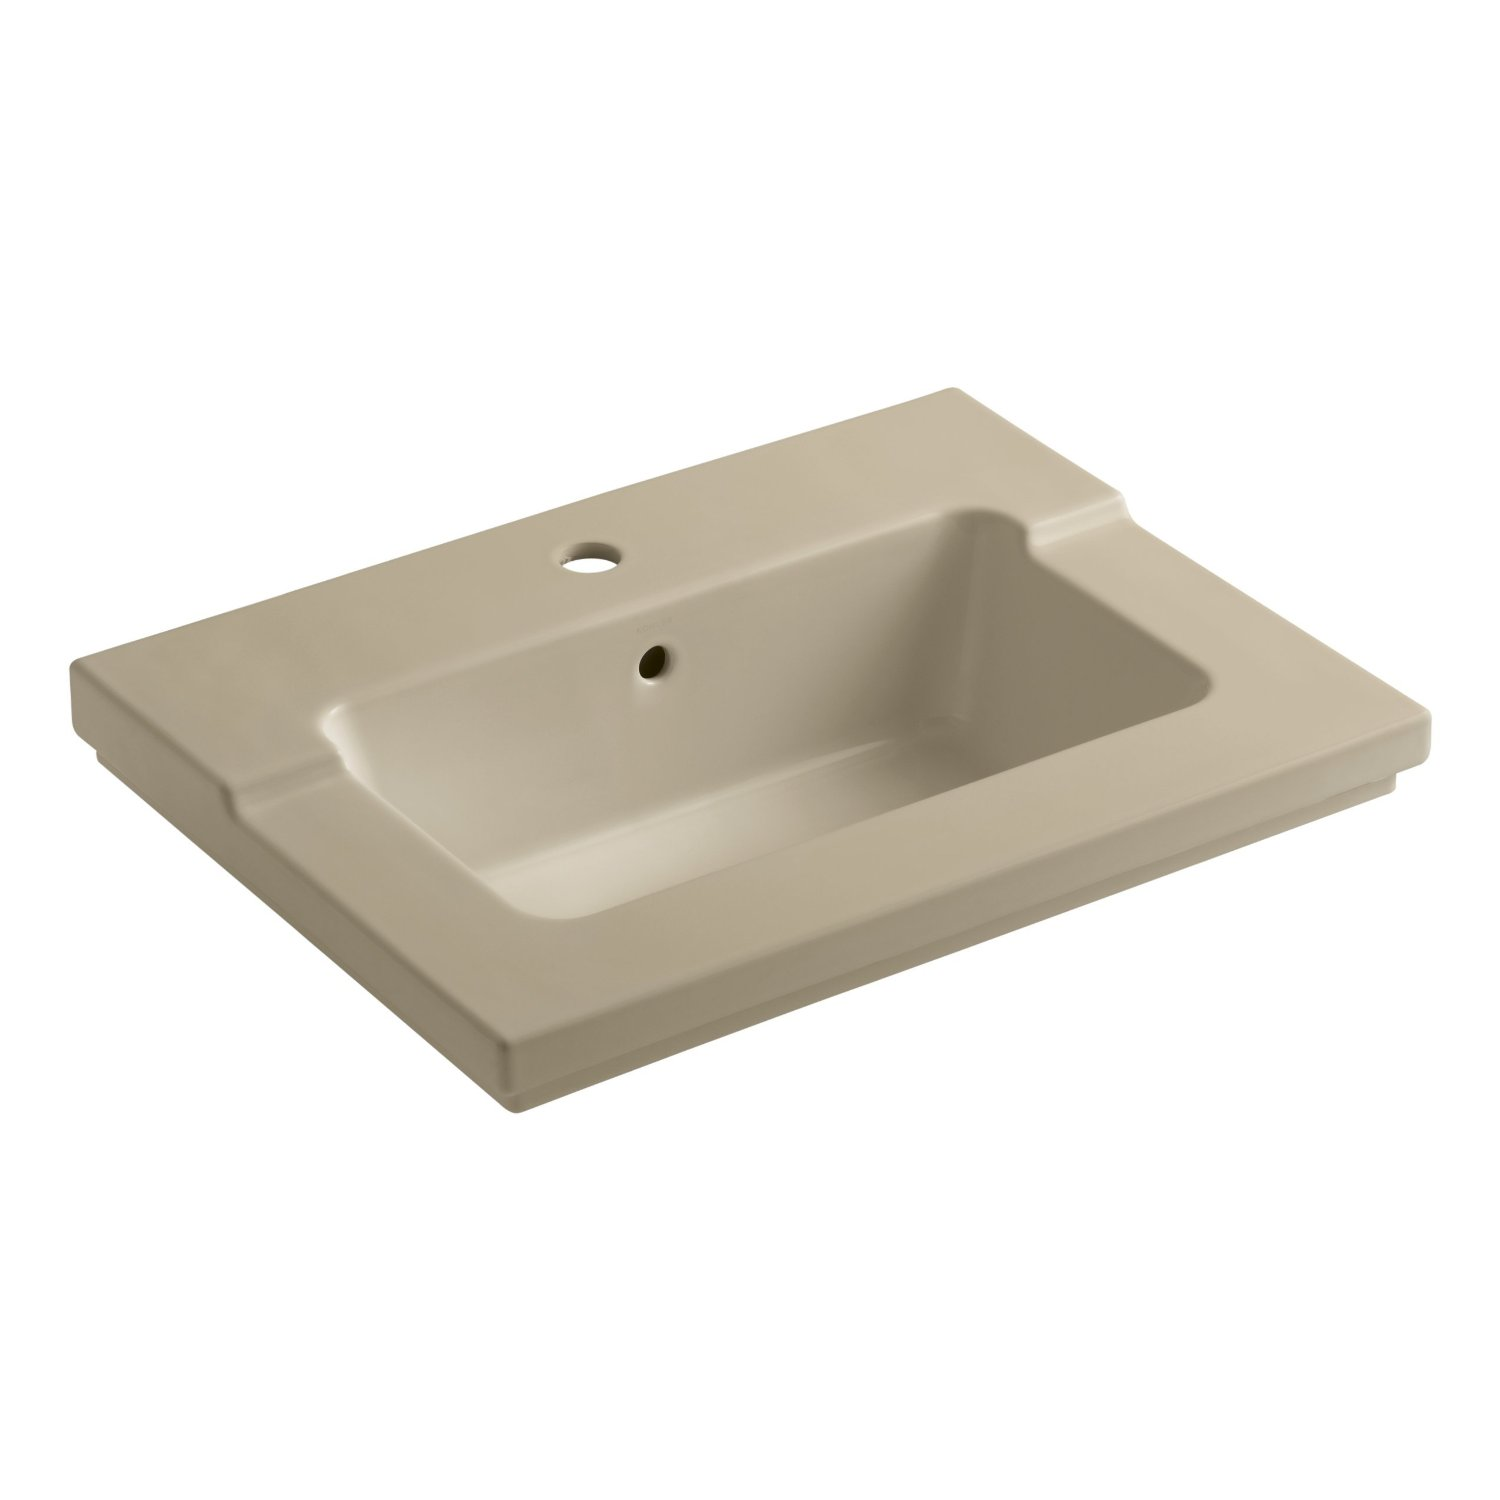 ... Bathroom Sink with Single-Hole Faucet Drilling, White - Vanity Sinks